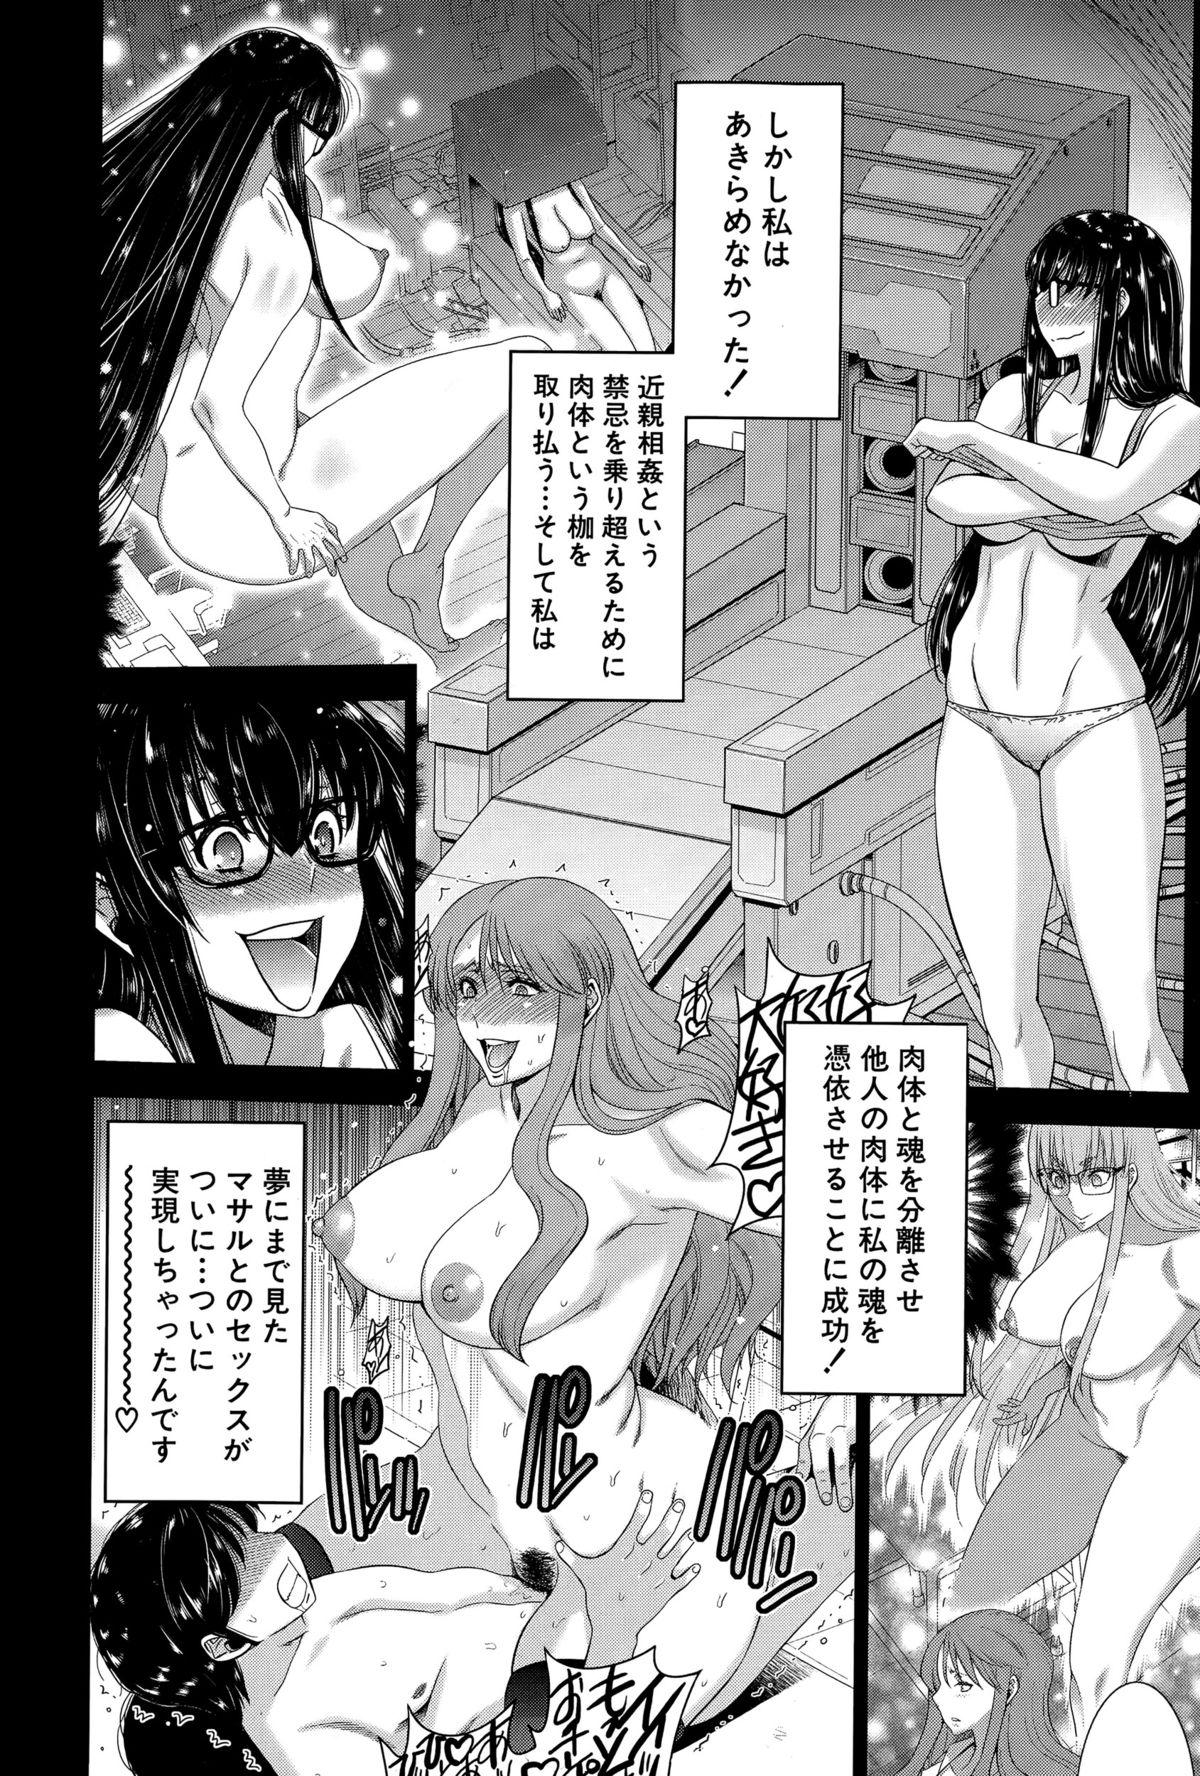 BUSTER COMIC 2015-07 243